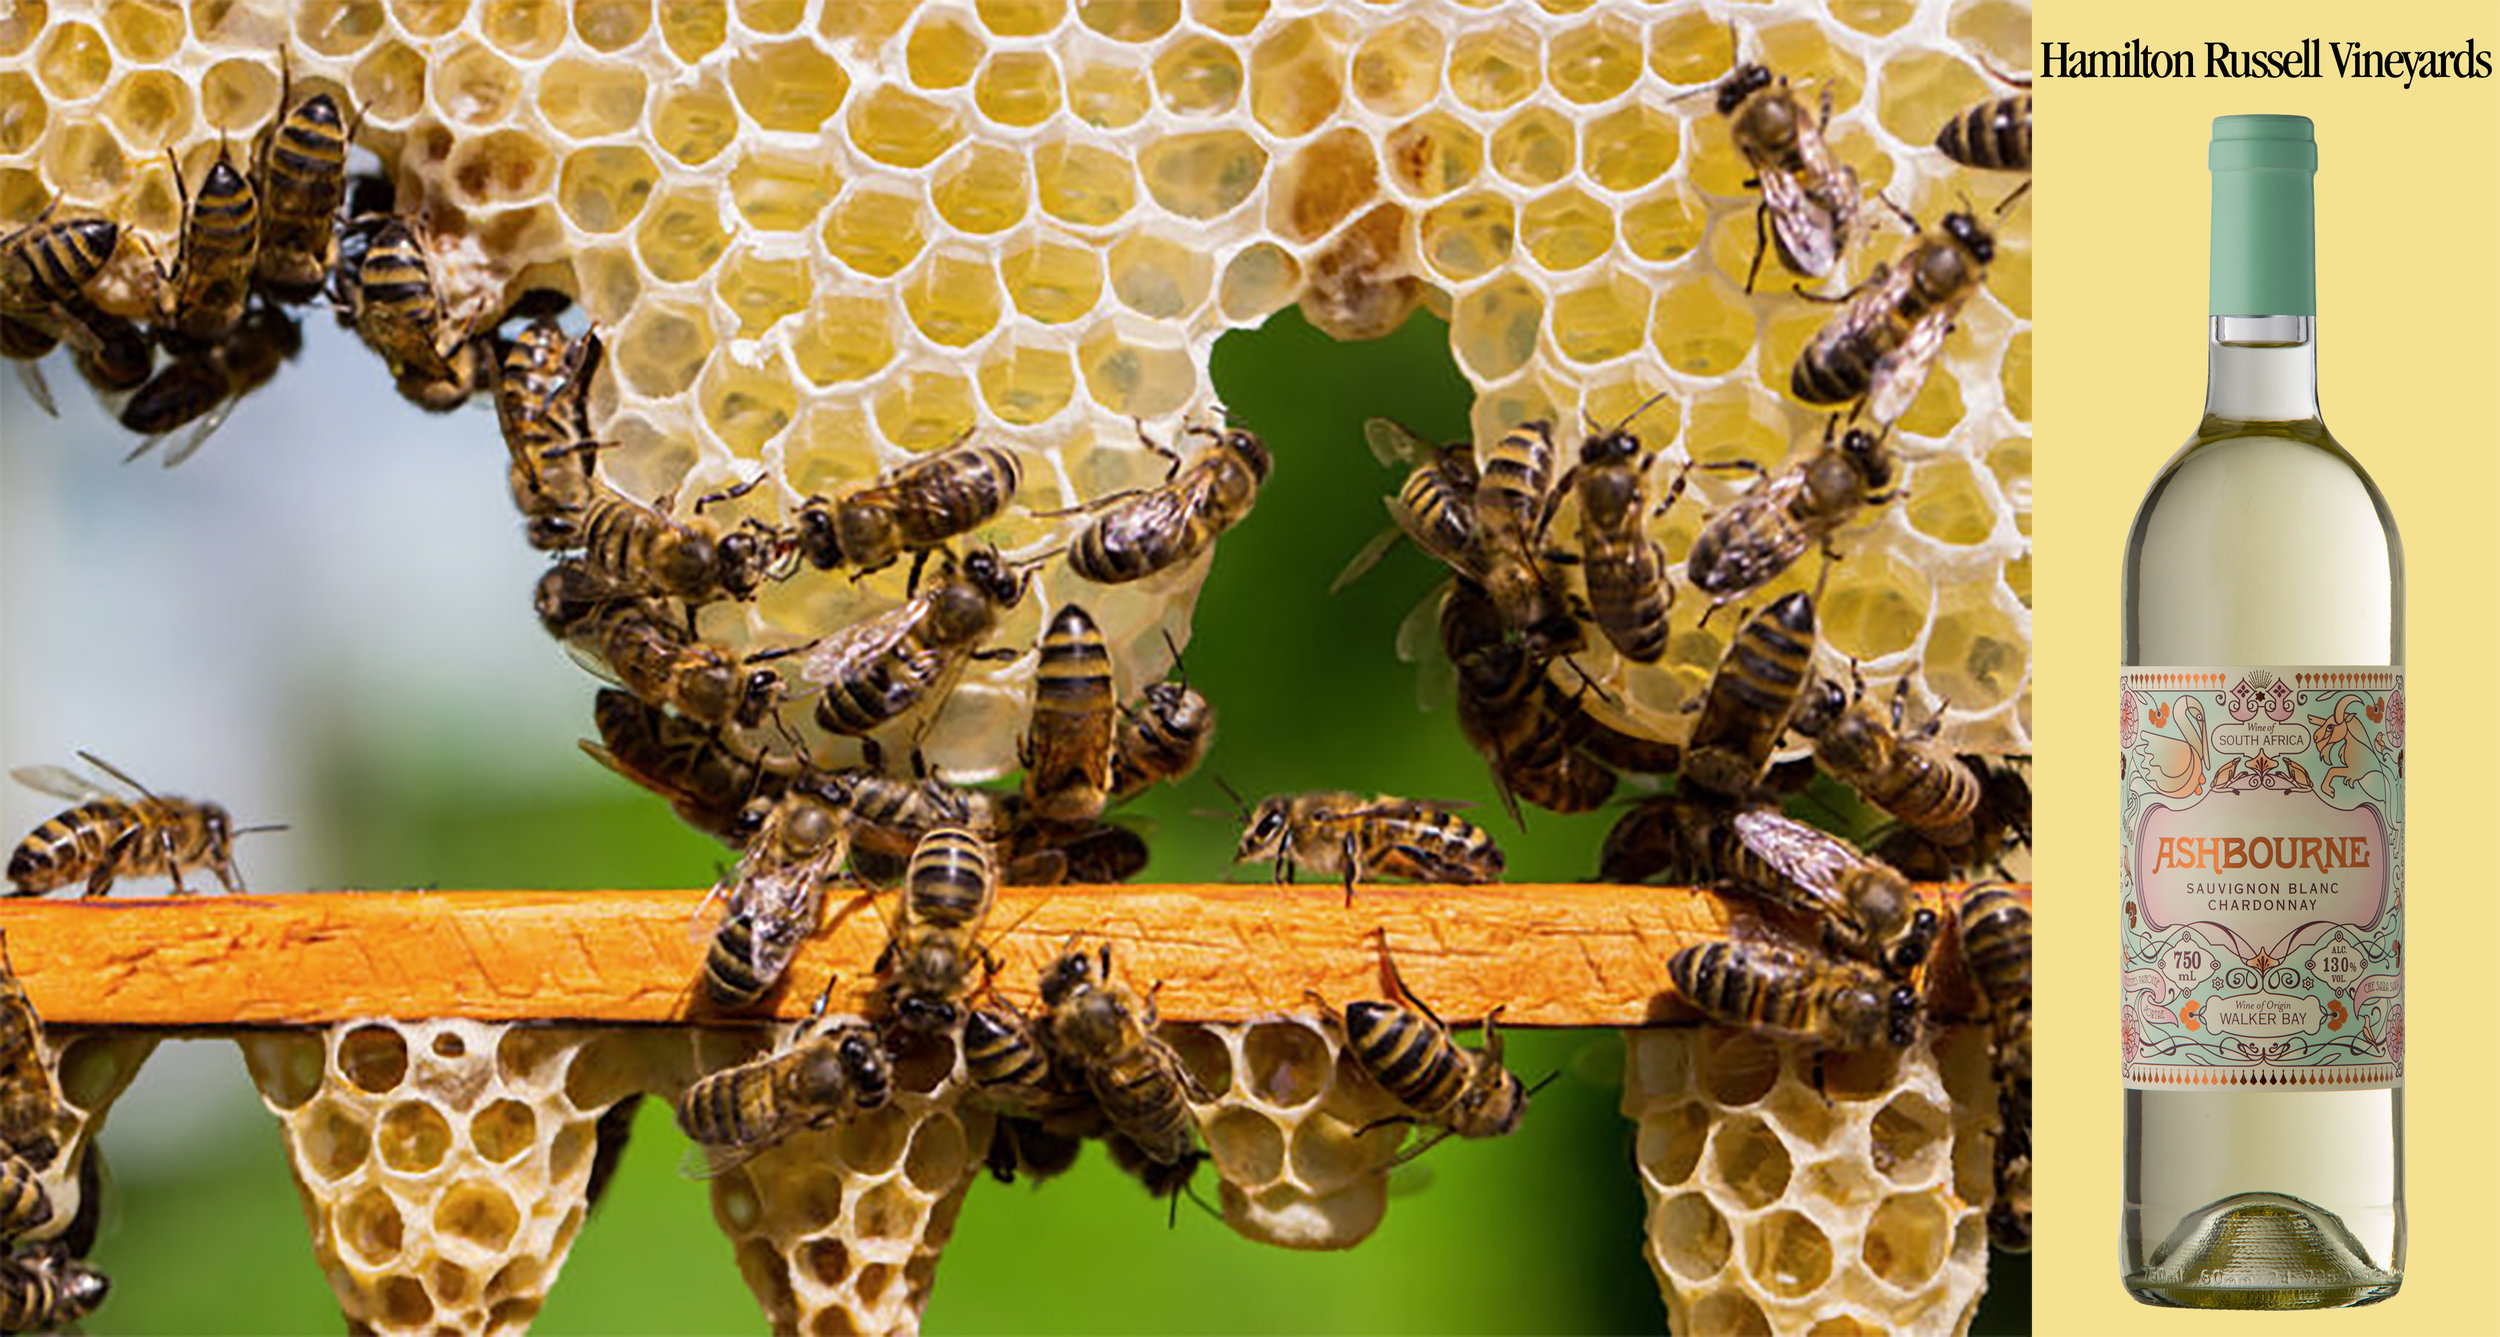 Wine Enthusiast: Terroir and Honey: Where Wine and Bees Meet ft. Hamilton Russell Vineyards | 03/9/2017